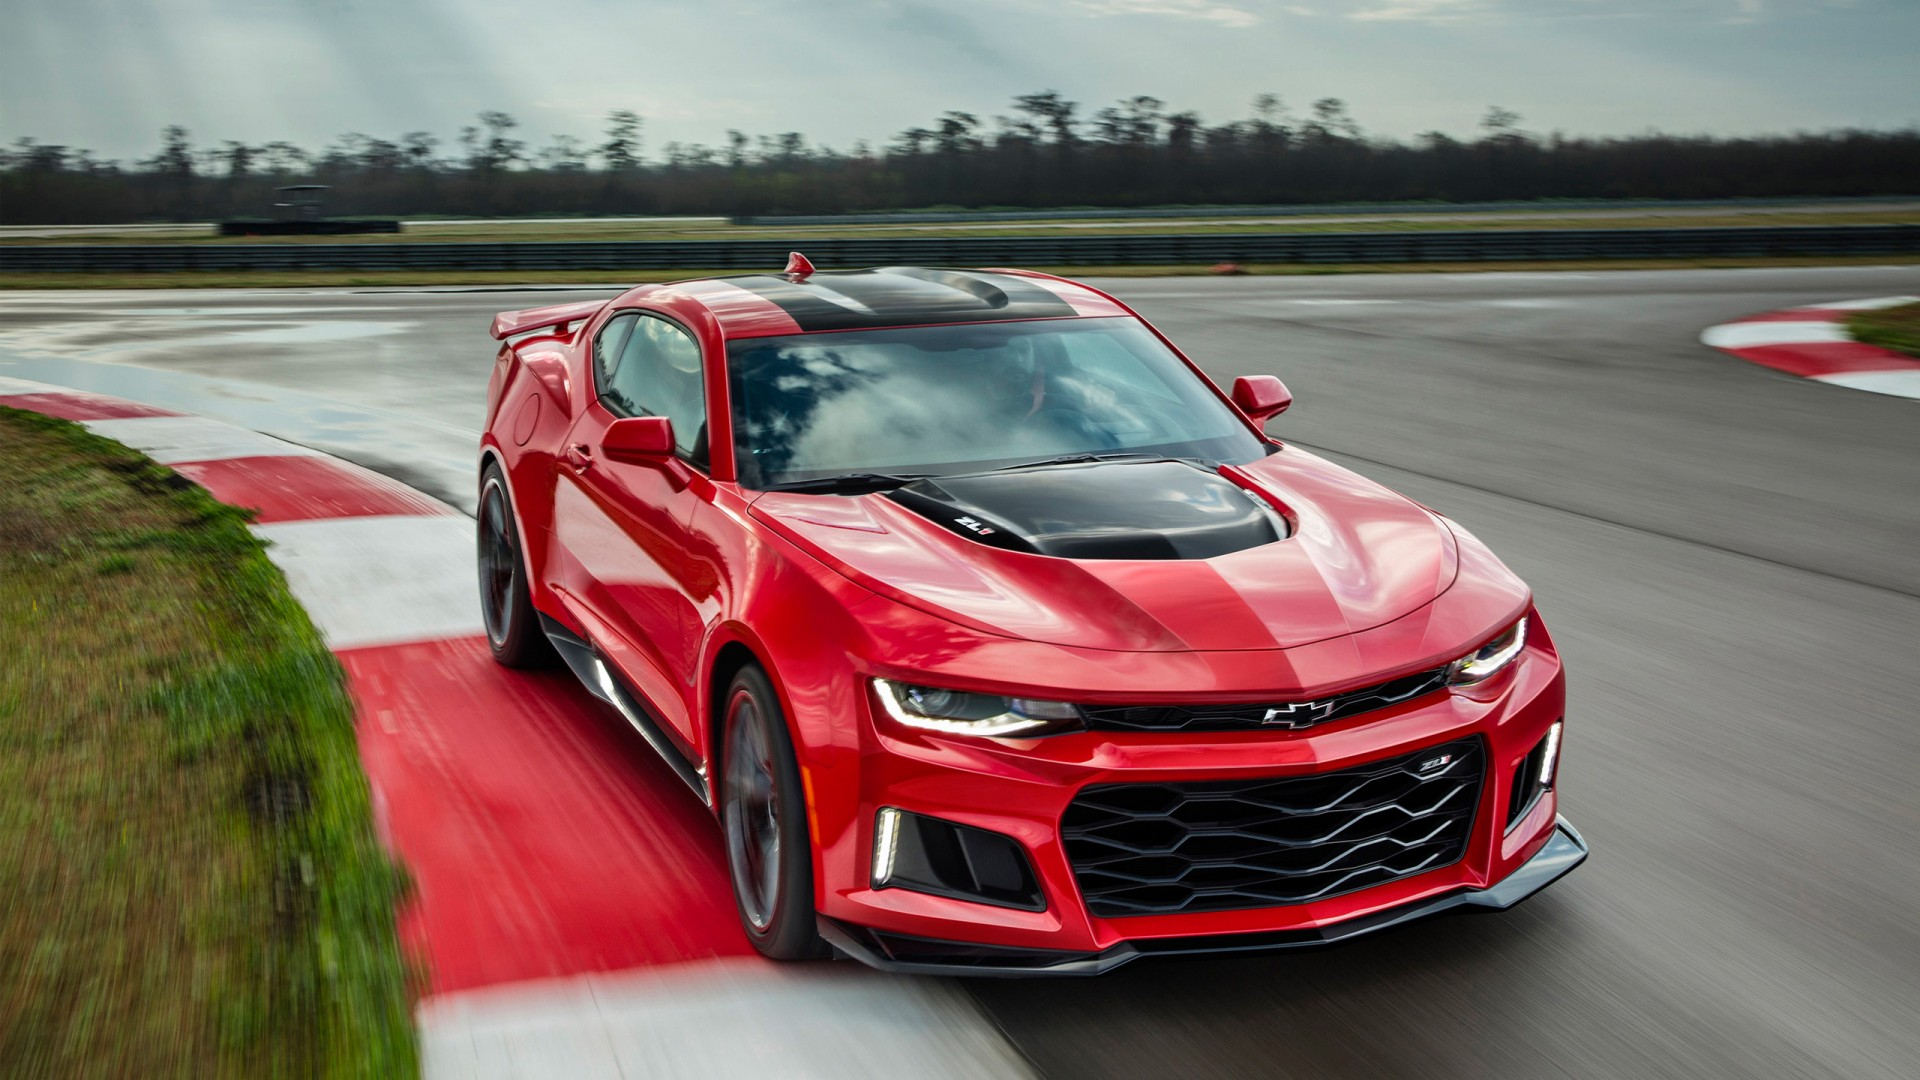 2017 Chevrolet Camaro ZL1 Wallpaper HD Car Wallpapers 1920x1080